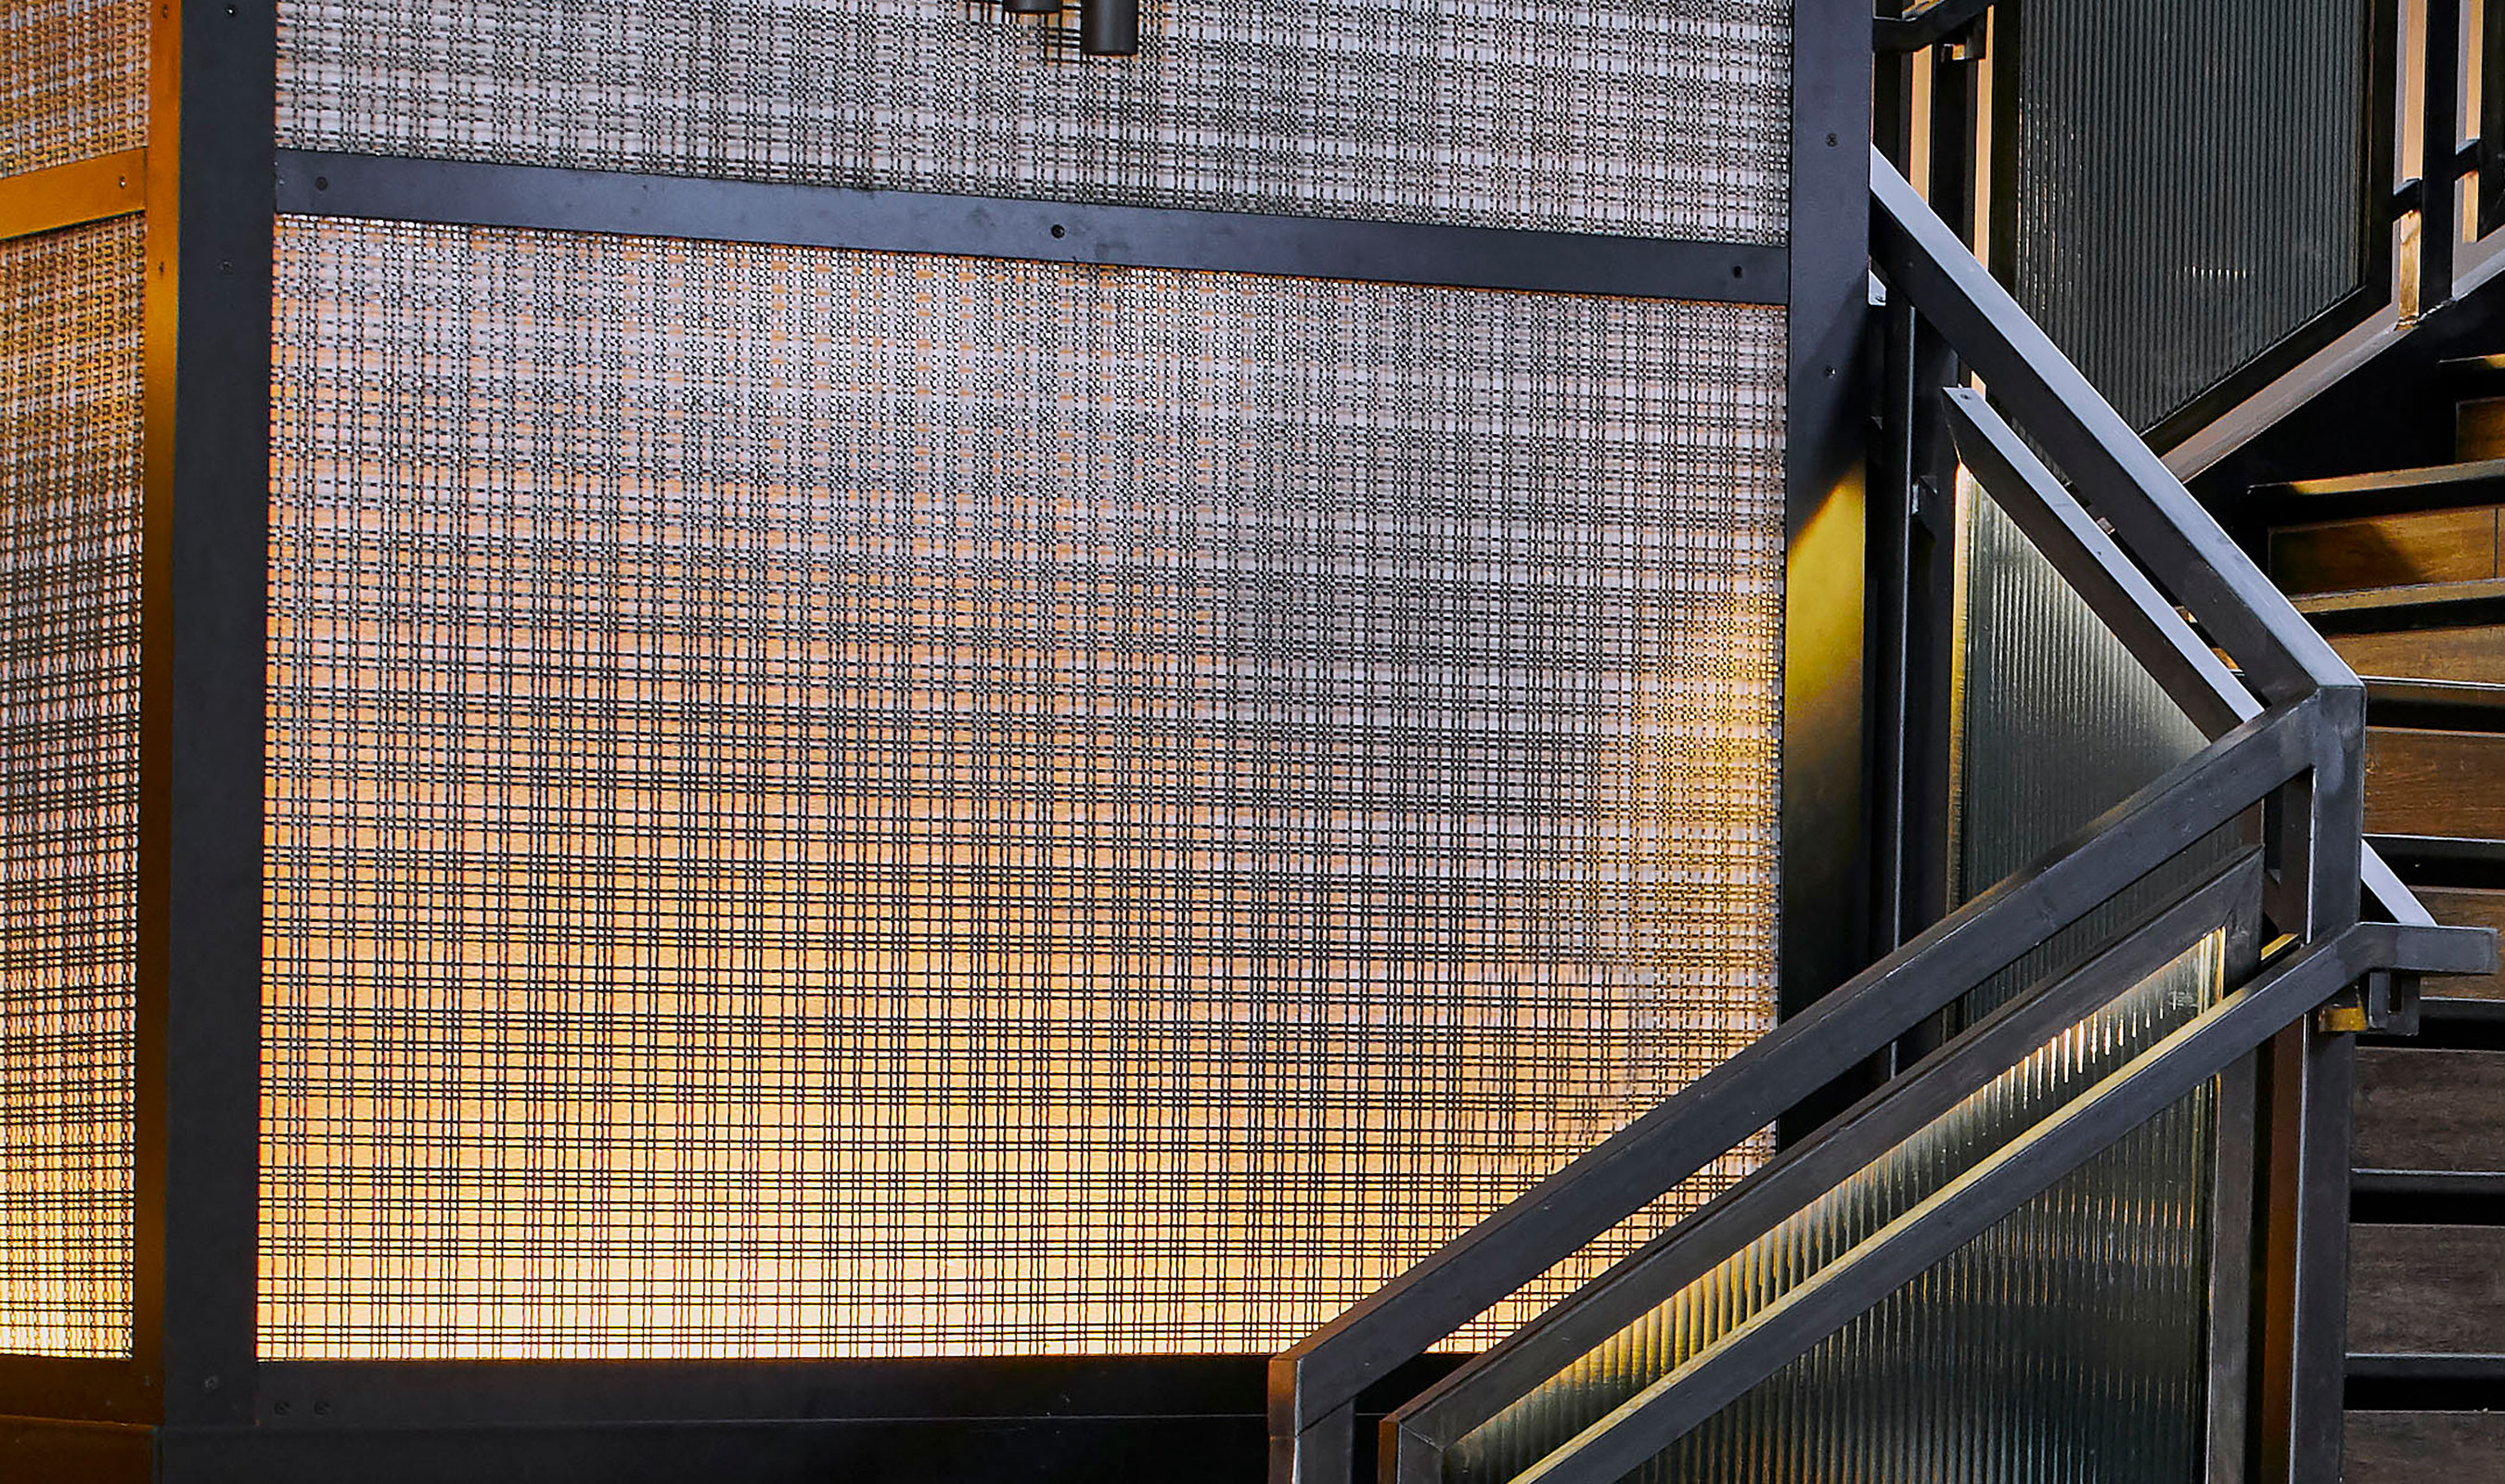 As a practical screen, Banker Wire's antique brass plated SJD-21 elevates the design vision of the Renaissance Nashville Hotel and Conference Center.